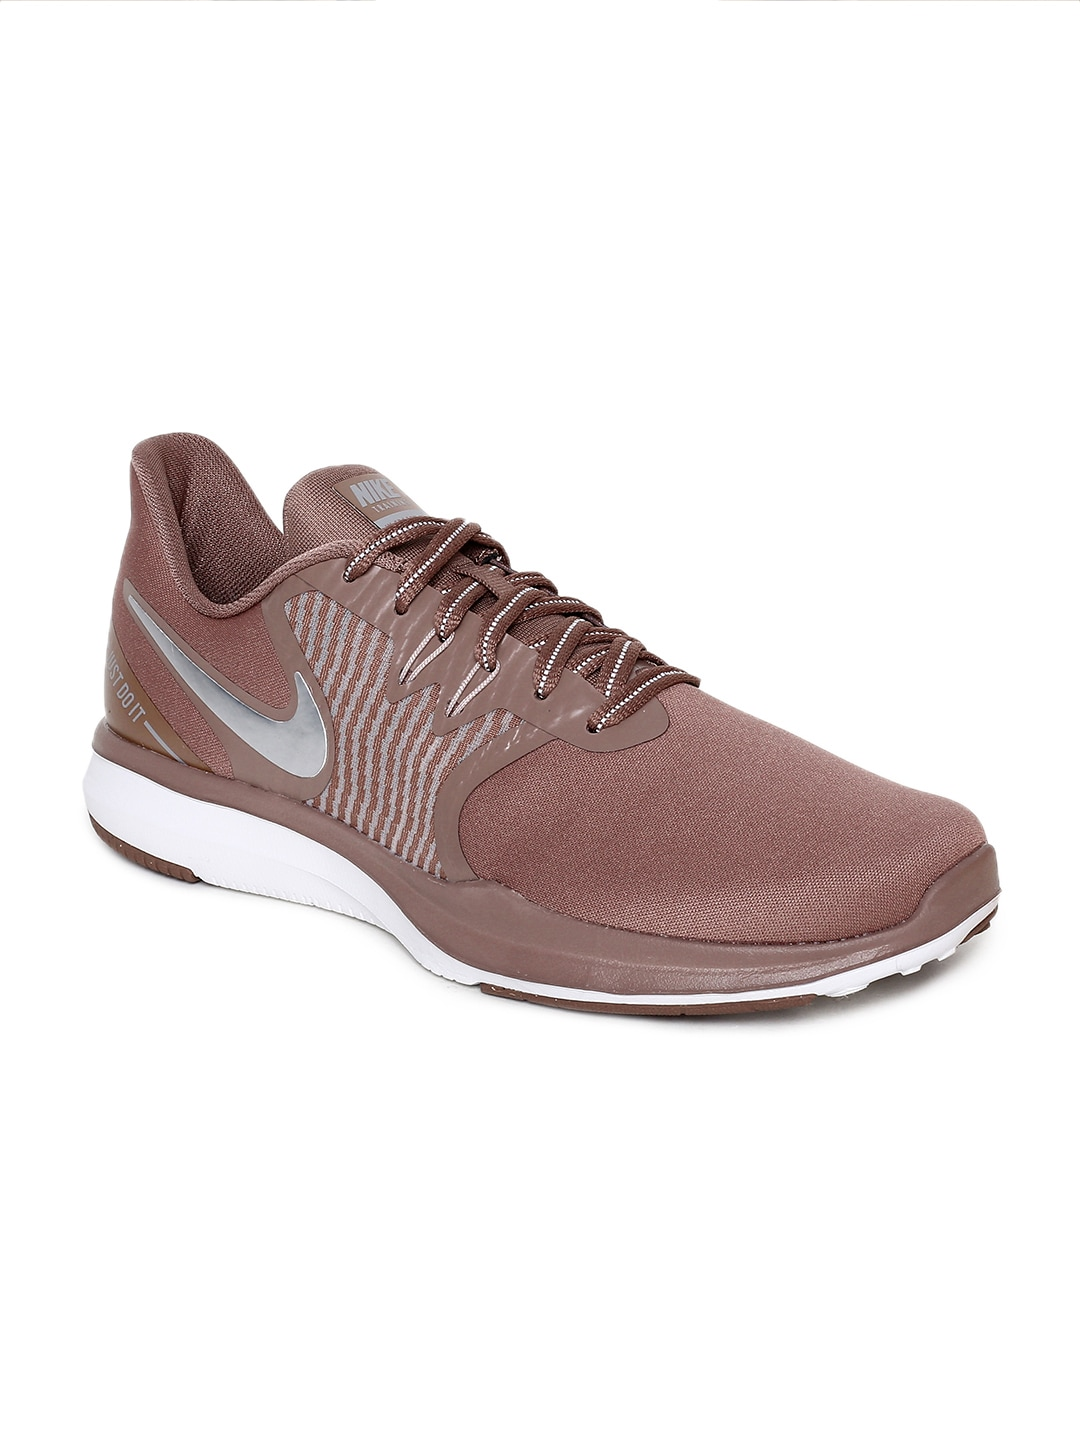 7237a4626 Nike Mfh - Buy Nike Mfh online in India